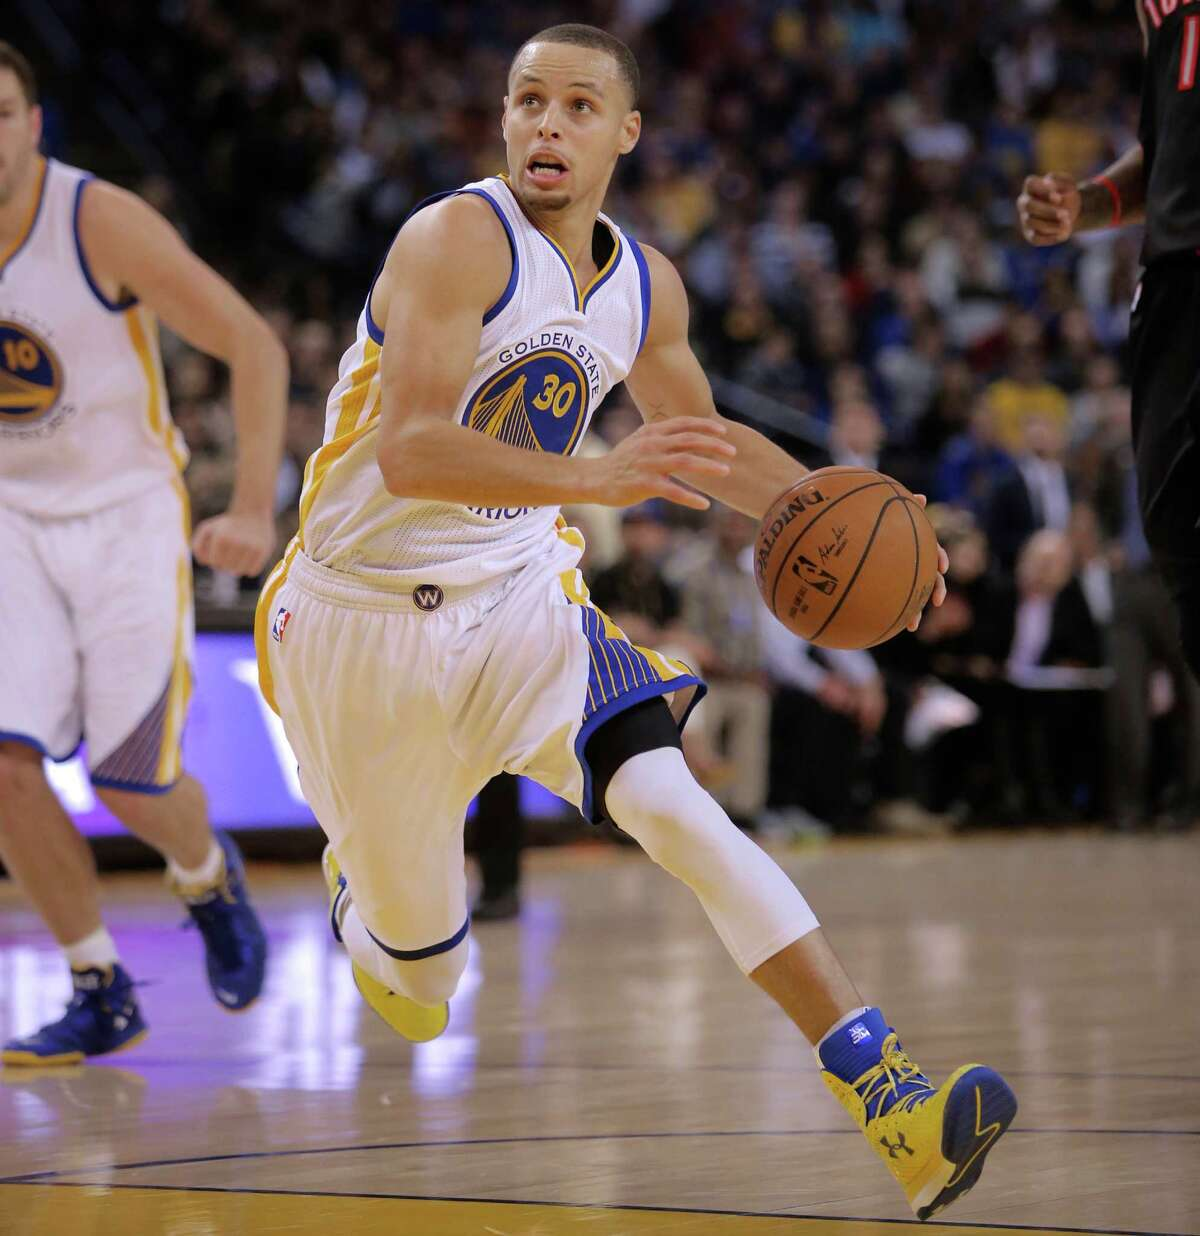 Stephen Curry scored 32 points with 12 assists and no turnovers in a game against the Toronto Raptors in January.